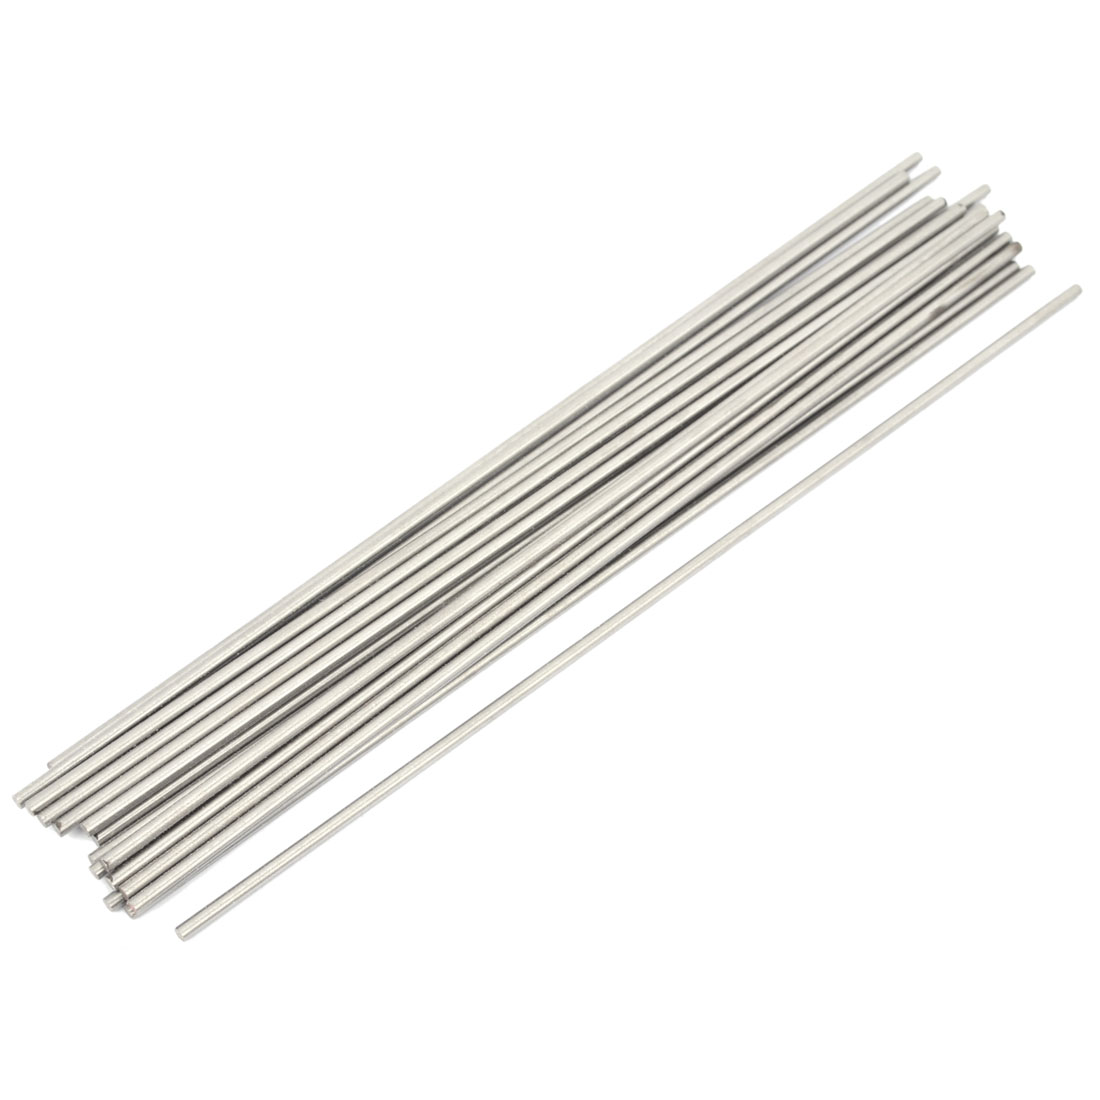 20 Pieces High Speed Steel Round Turning Lathe Carbide Bars 3mm x 200mm